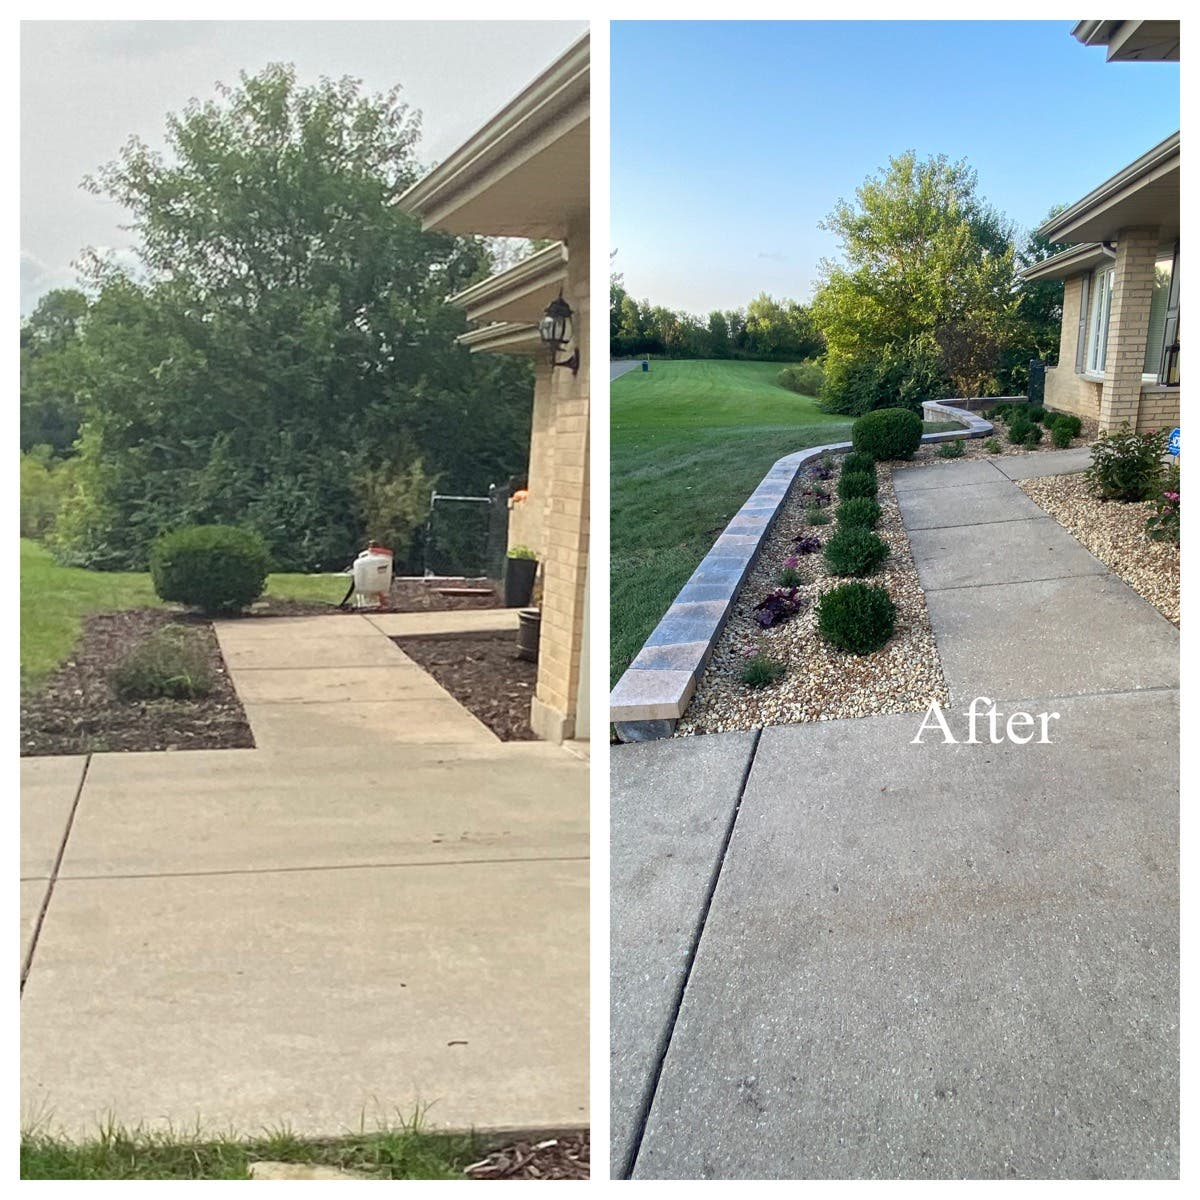 All about drainage and hardscape installation - Naperville, IL Patch